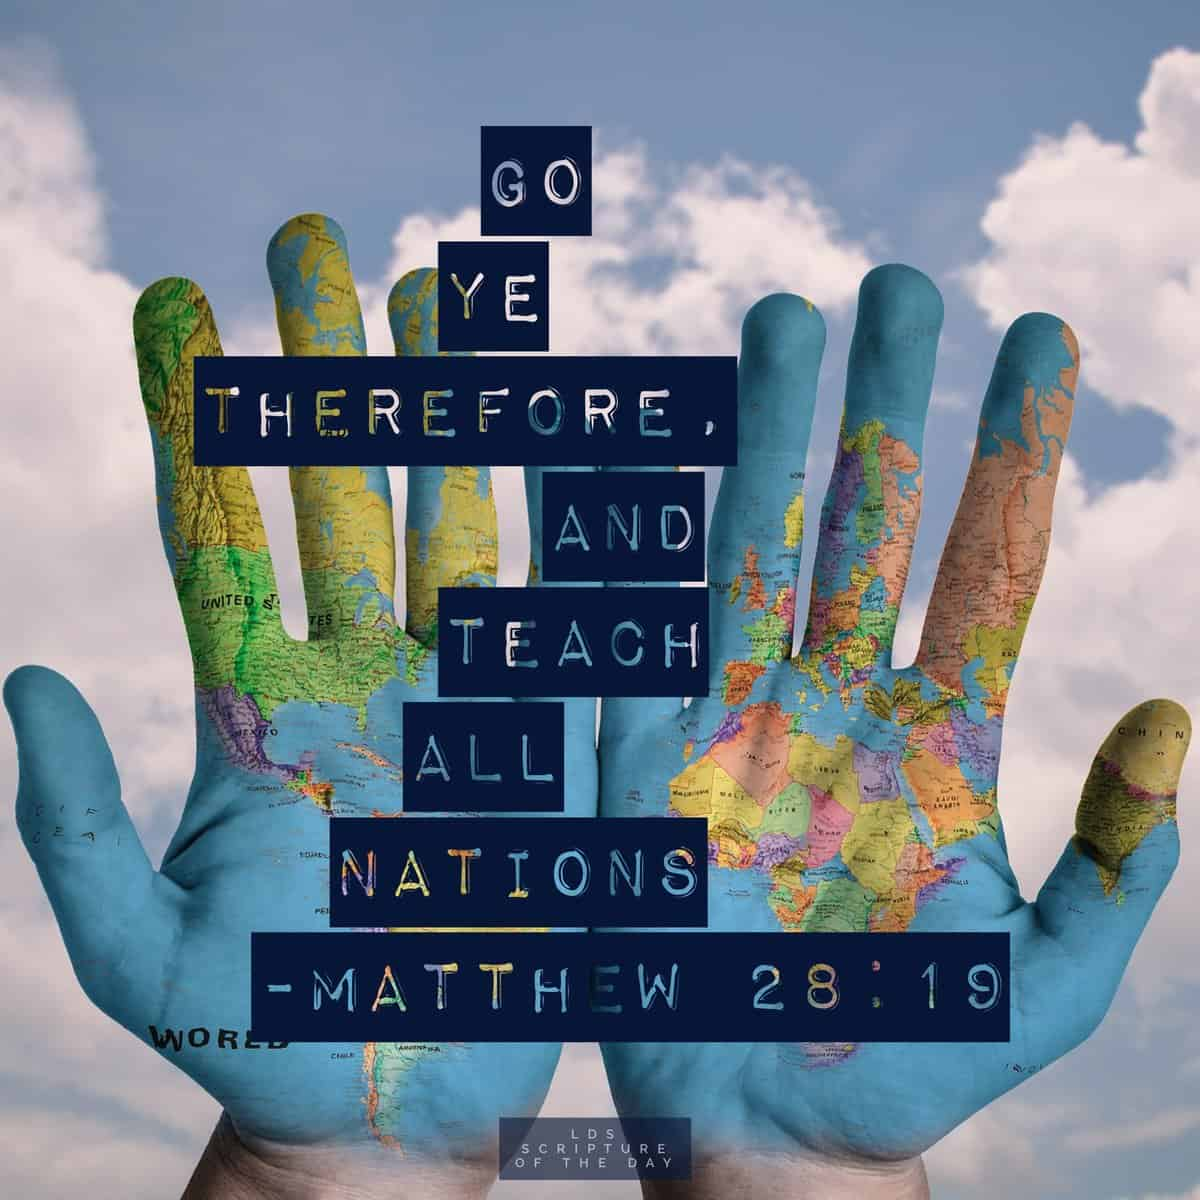 Go ye therefore, and teach all nations... Matthew 28:19